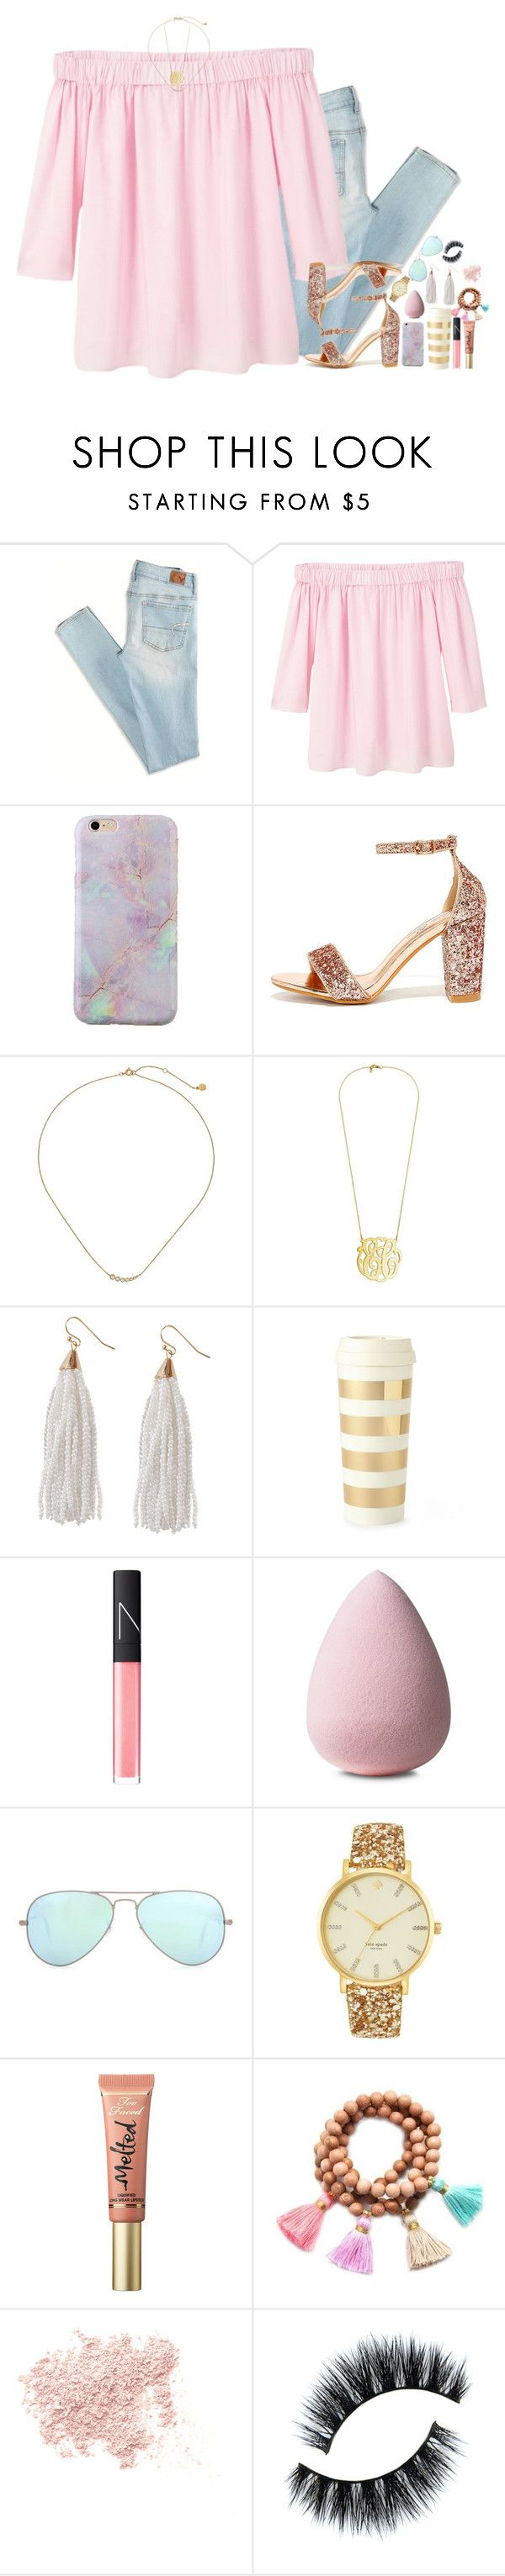 """""""hehe, spring set. --tag in desc."""" by sydneylawsonn ❤ liked on Polyvore featuring American Eagle Outfitters, MANGO, Bella Luna, Gorjana, Humble Chic, Kate Spade, NARS Cosmetics, Ray-Ban, Too Faced Cosmetics and Gold & Gray"""